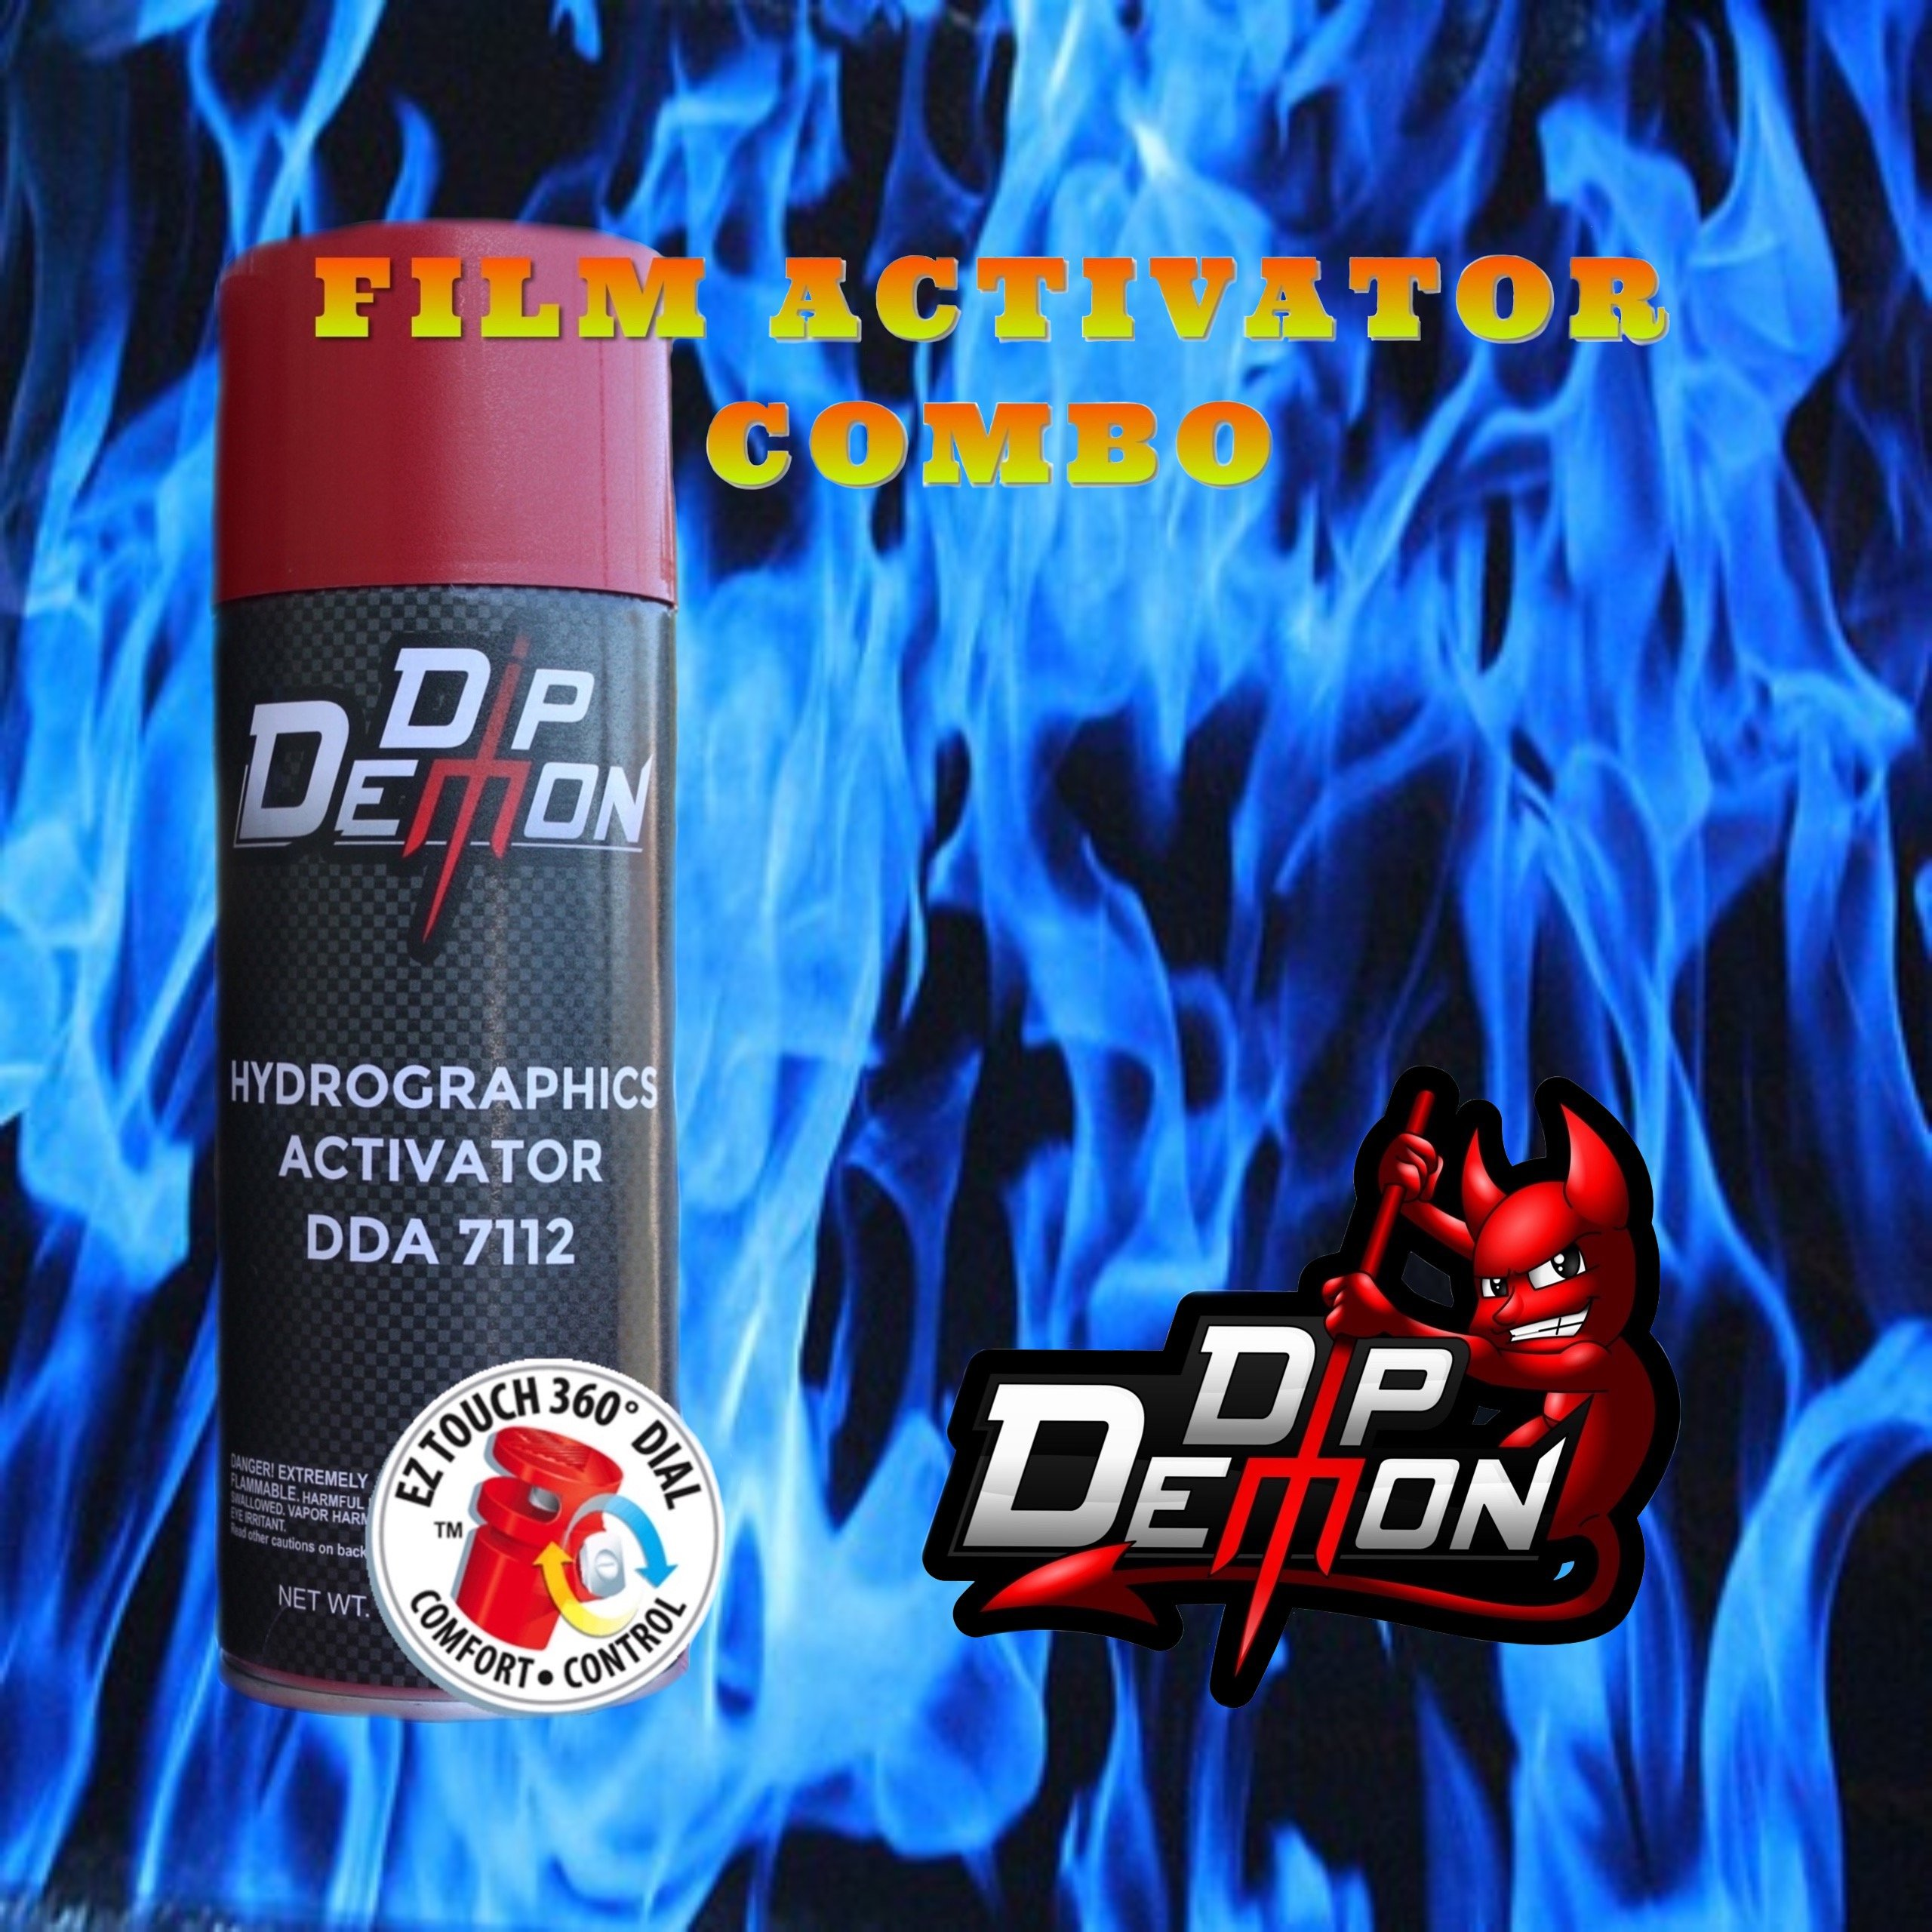 Combo Kit Blue Flames Hydrographic Water Transfer Film Activator Combo Kit Hydro Dipping Dip Demon by DIP DEMON